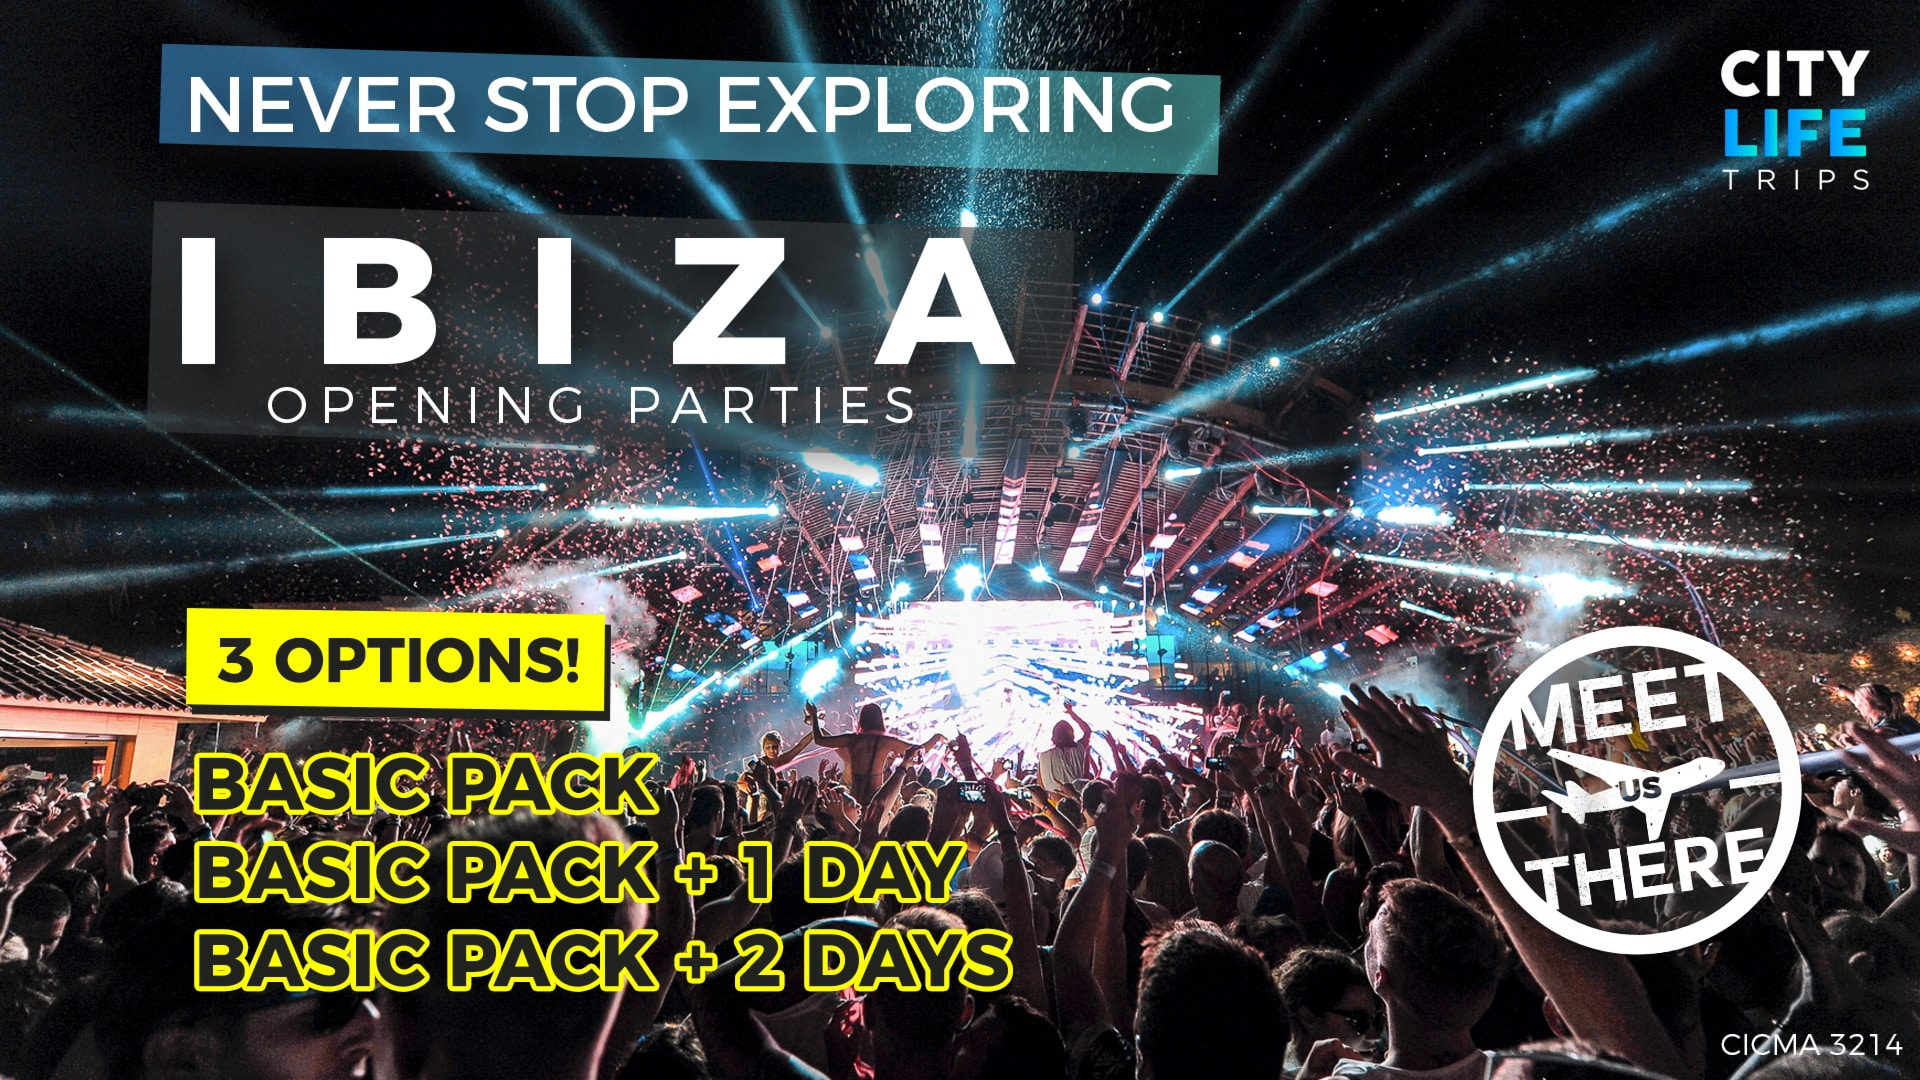 Ibiza – Opening Parties 2019 (Meet us There)